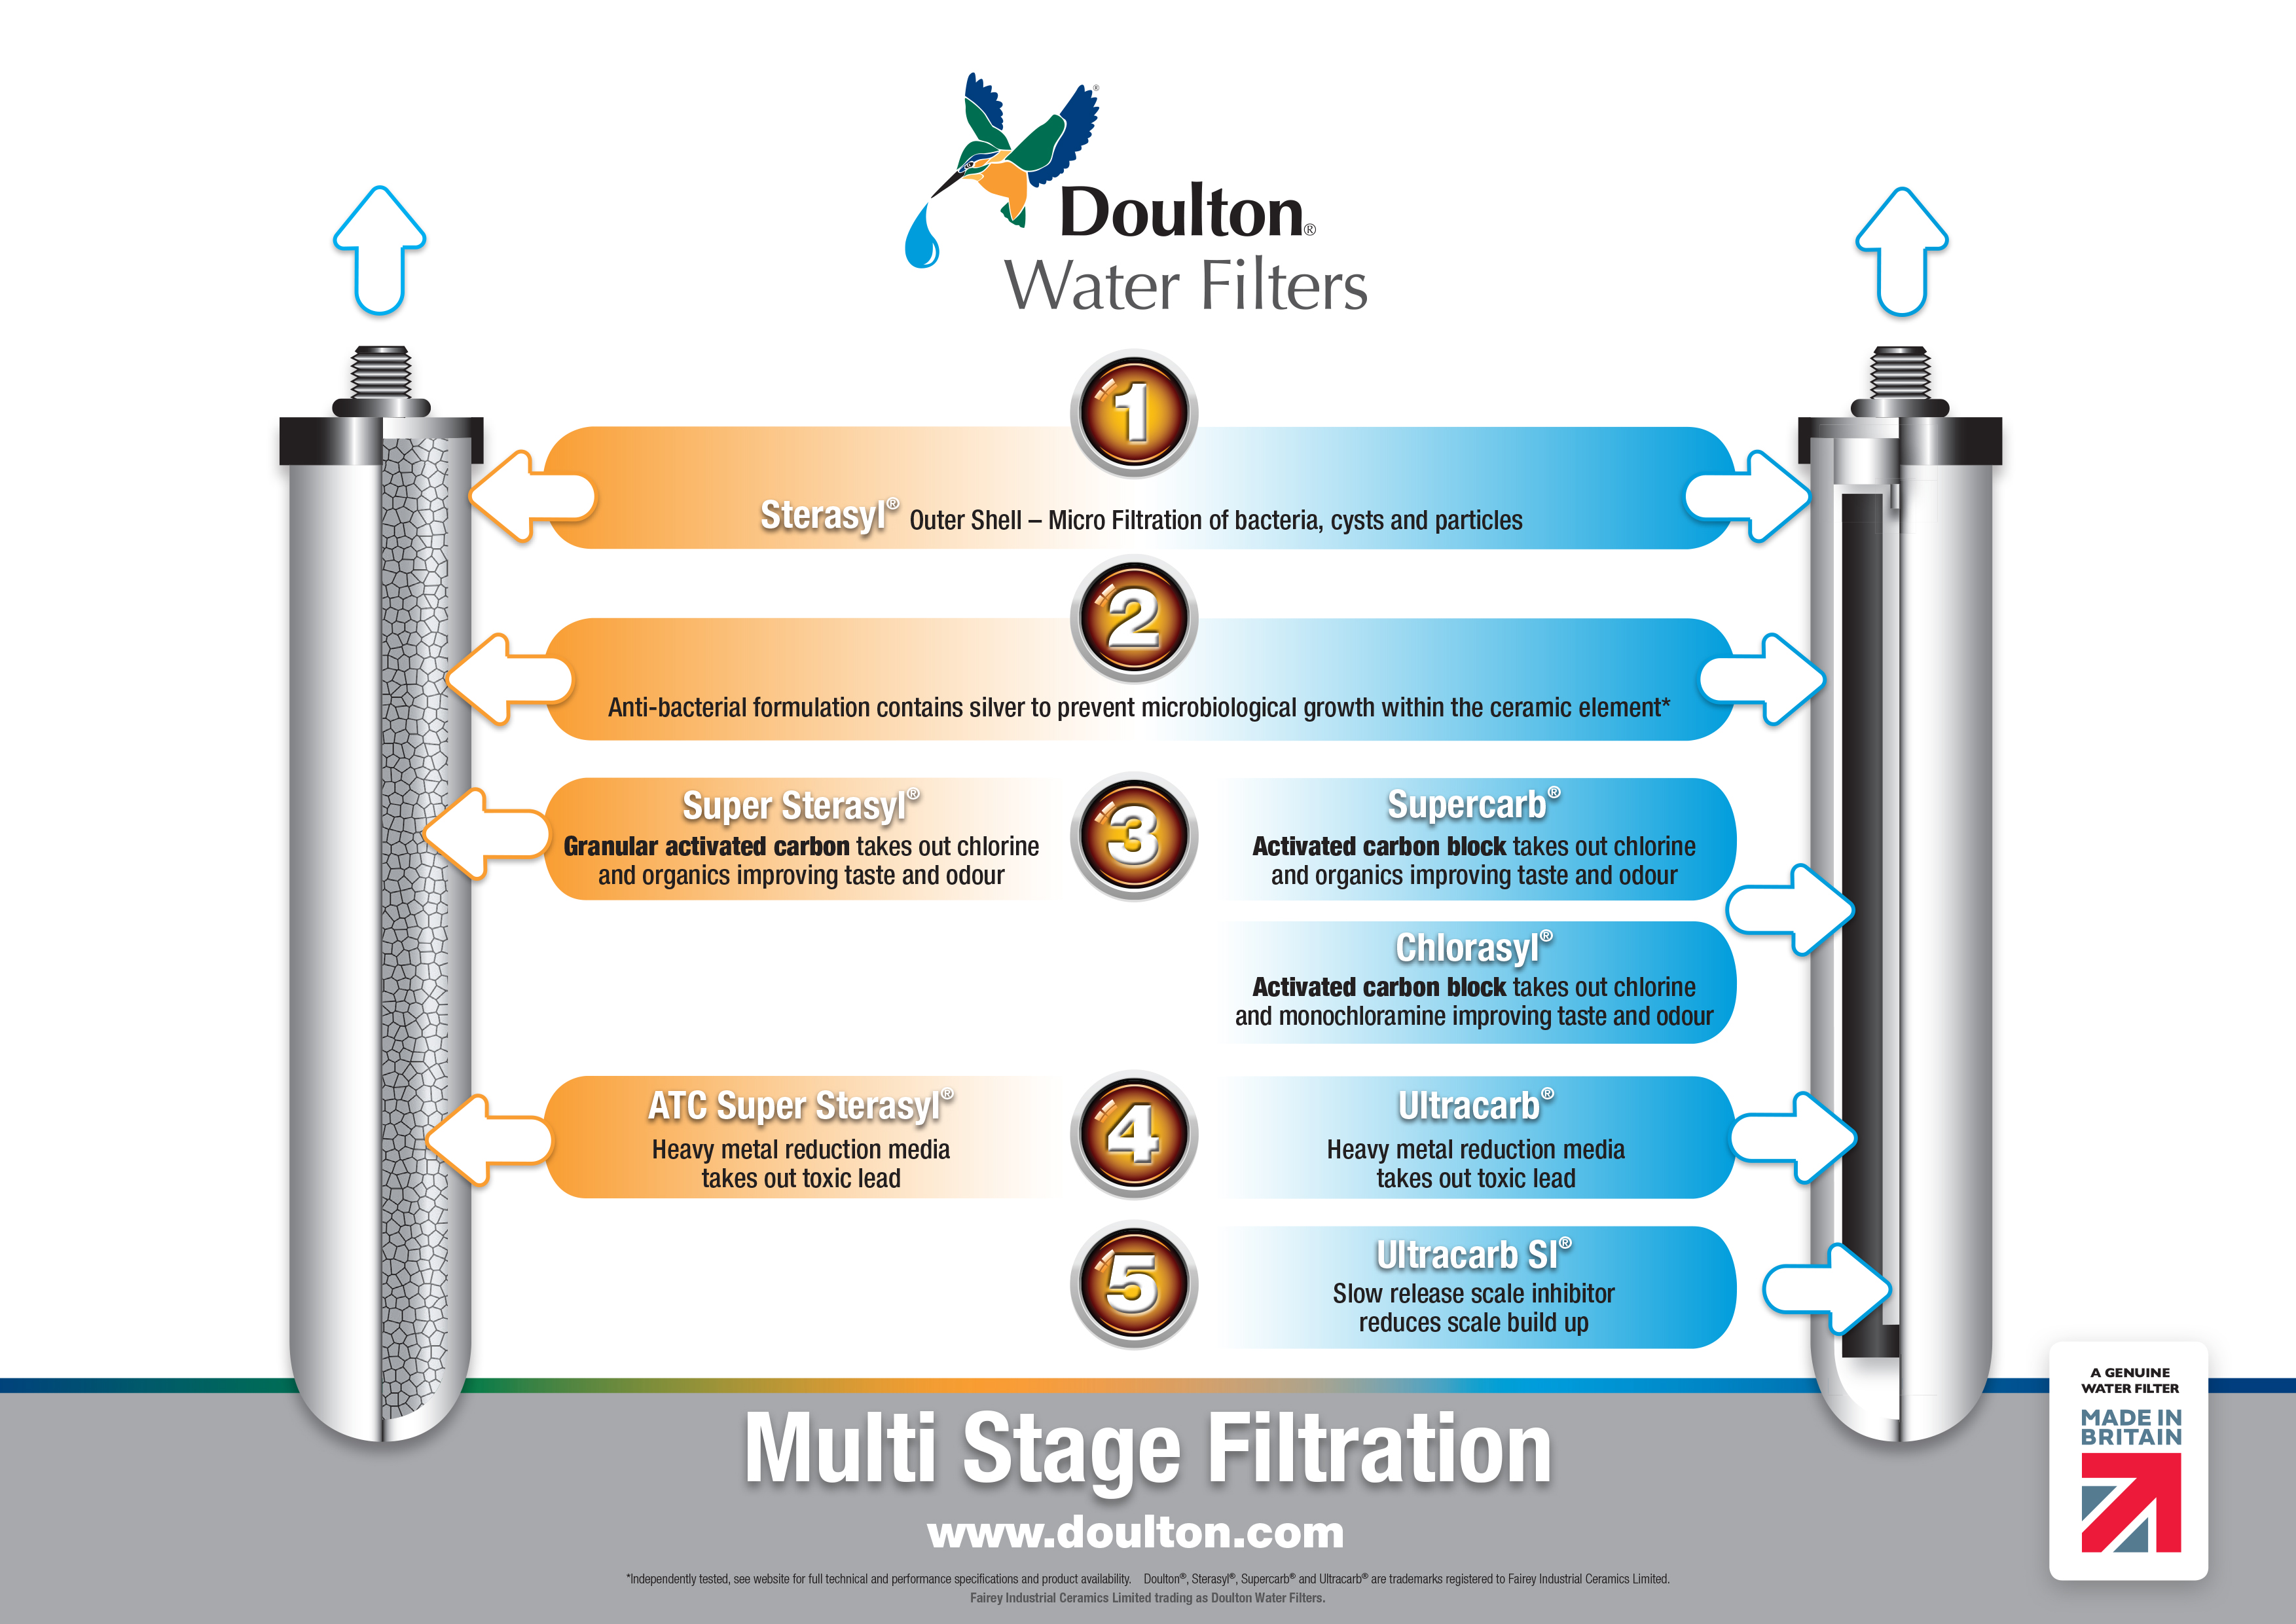 Multi Stage Filtration